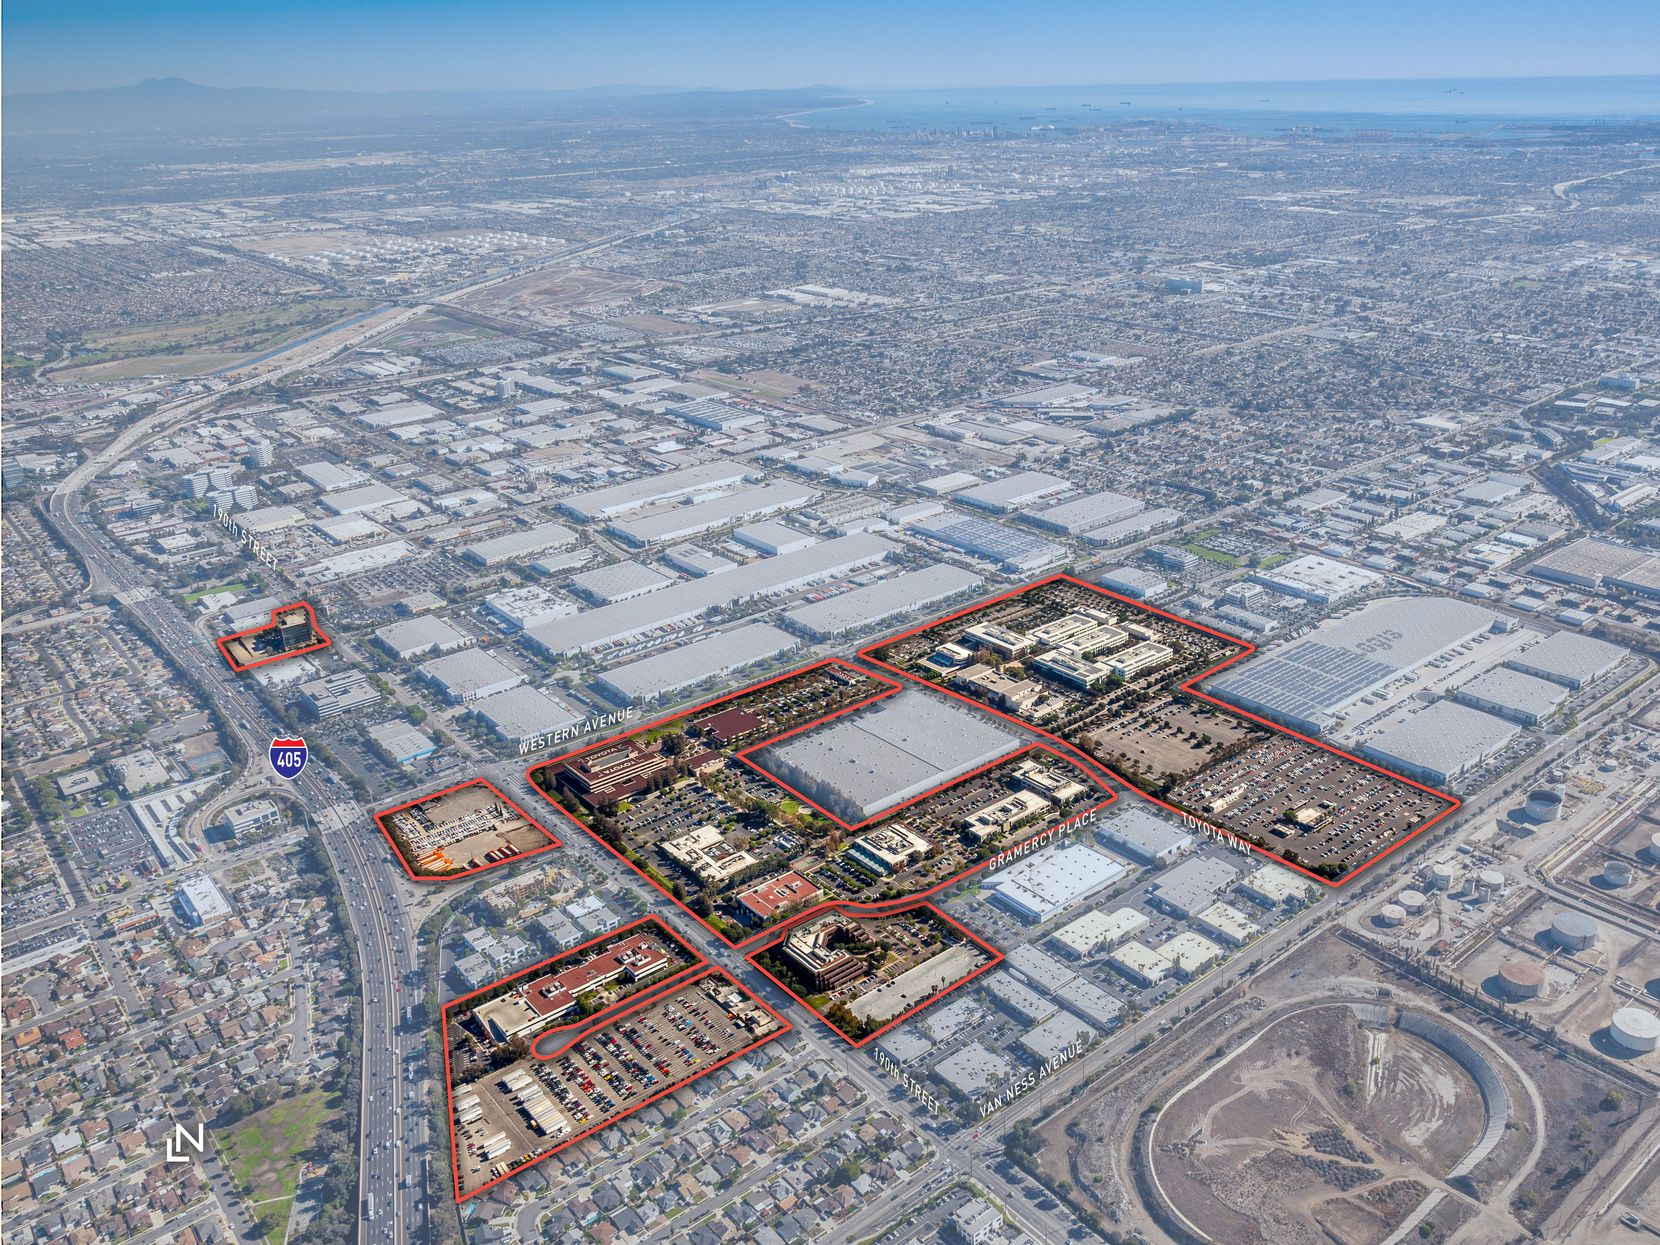 Toyota's old California  campus includes 2 million square feet of buildings.